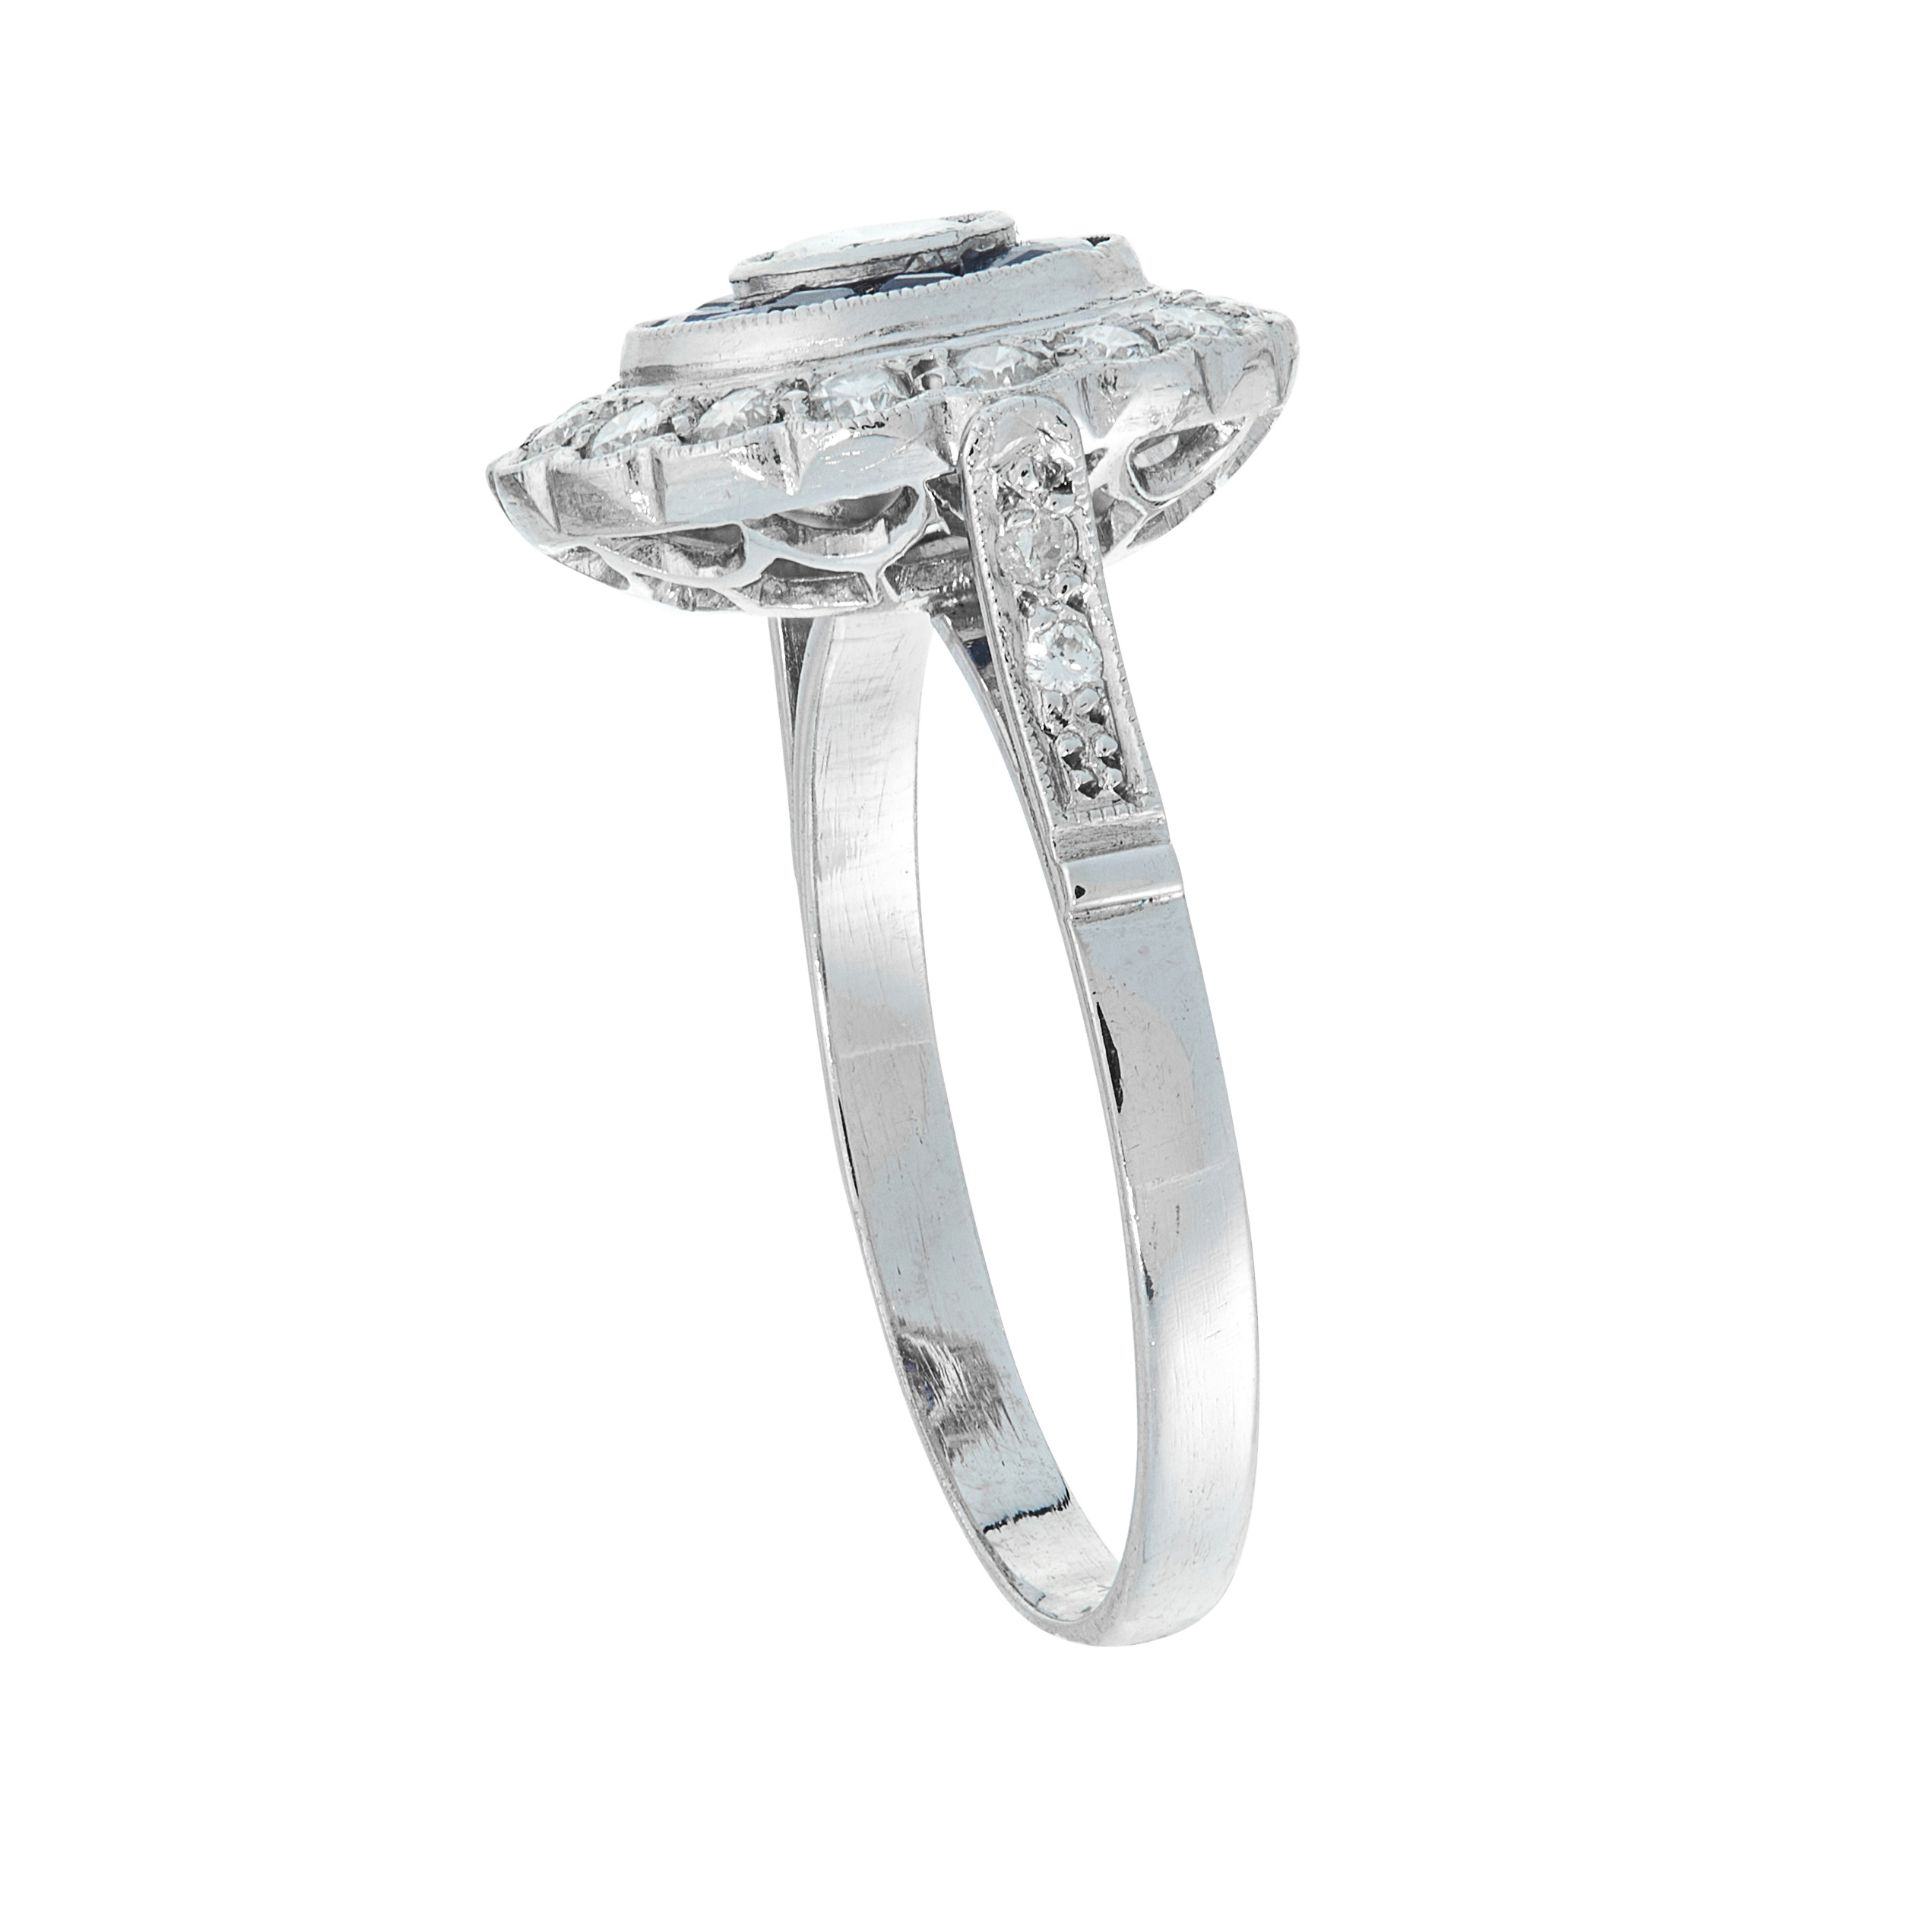 A DIAMOND AND SAPPHIRE DRESS RING of target design, the central round cut diamond within - Image 2 of 2